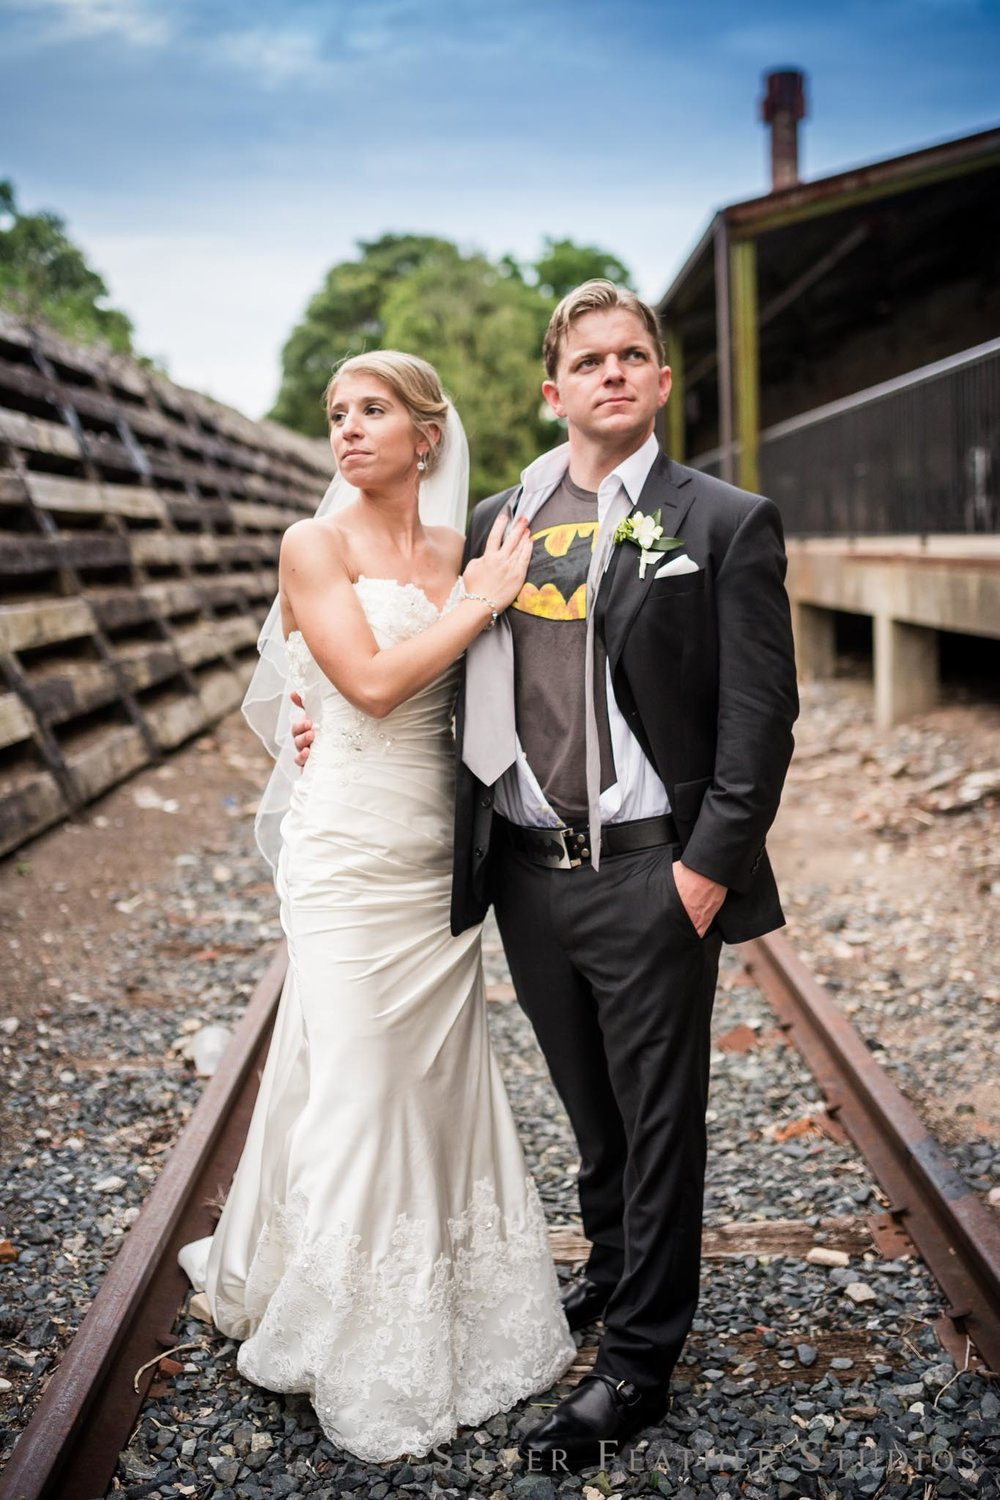 Amanda & John's Batman Inspired wedding at The Cotton Room by Silver Feather Studios